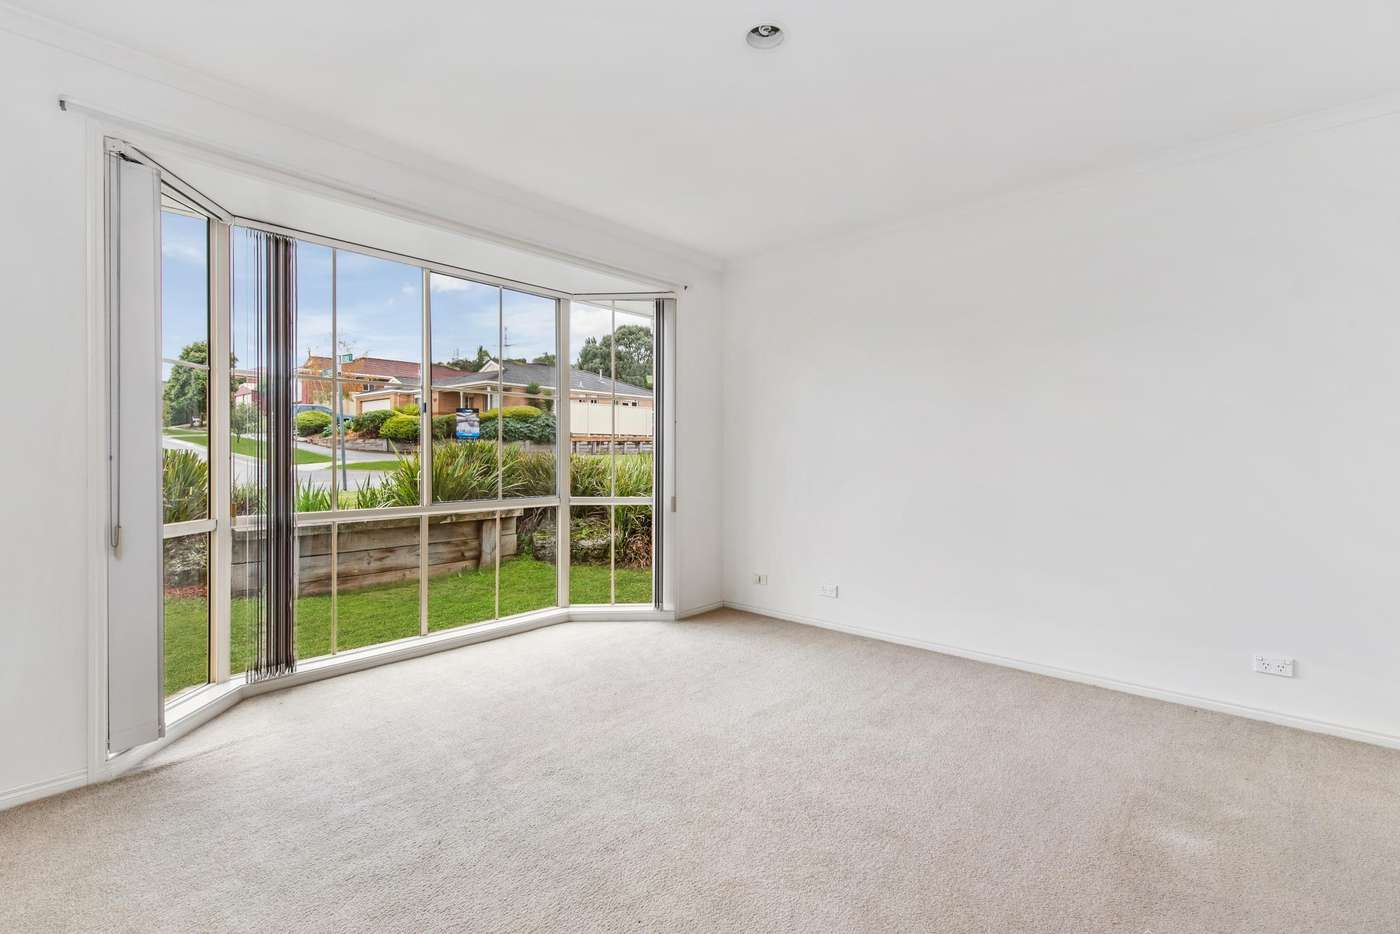 Sixth view of Homely house listing, 29 Browtop Road, Narre Warren VIC 3805